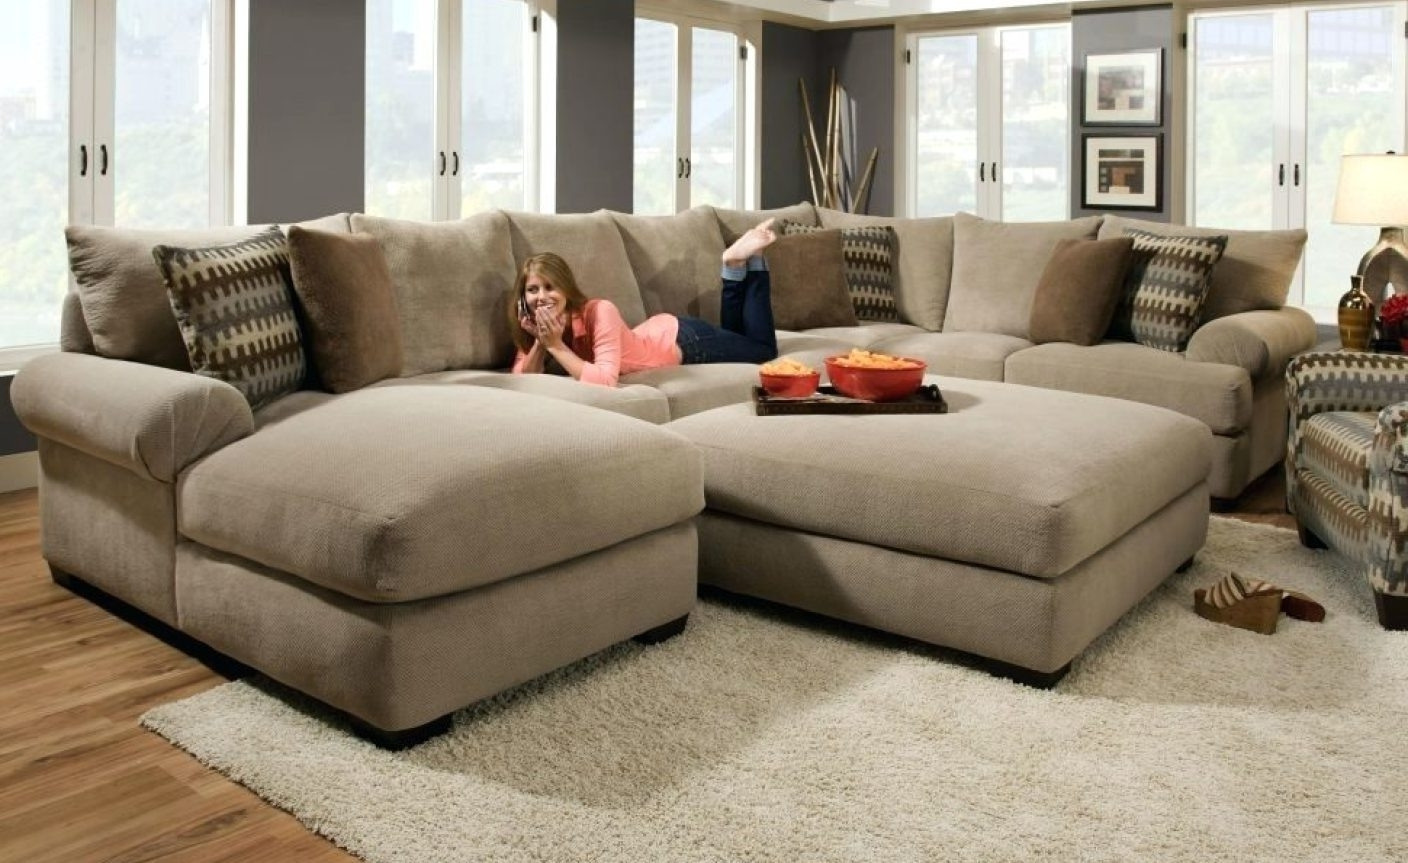 Huge U Shaped Sectionals With Regard To Famous Sofa : Sofa U Shaped Sectional Sofa With Chaise Fabric Stunning U (View 9 of 15)